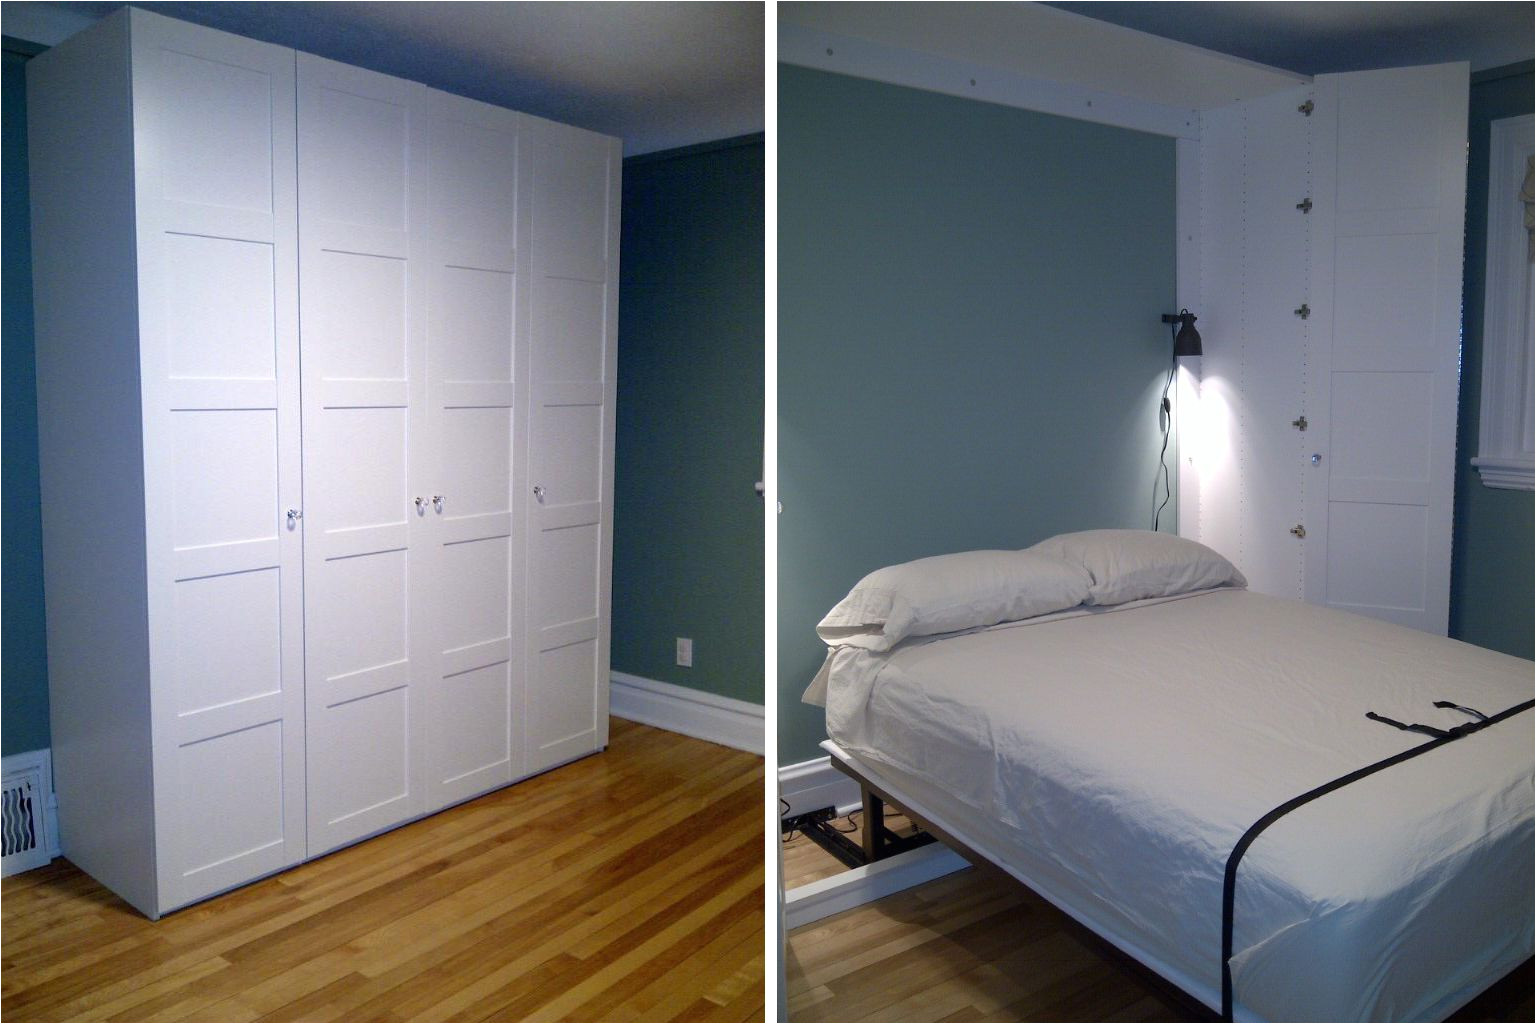 renos diy ikea murphy bed via smallspaces 581cdf275f9b581c0b65d3de jpg